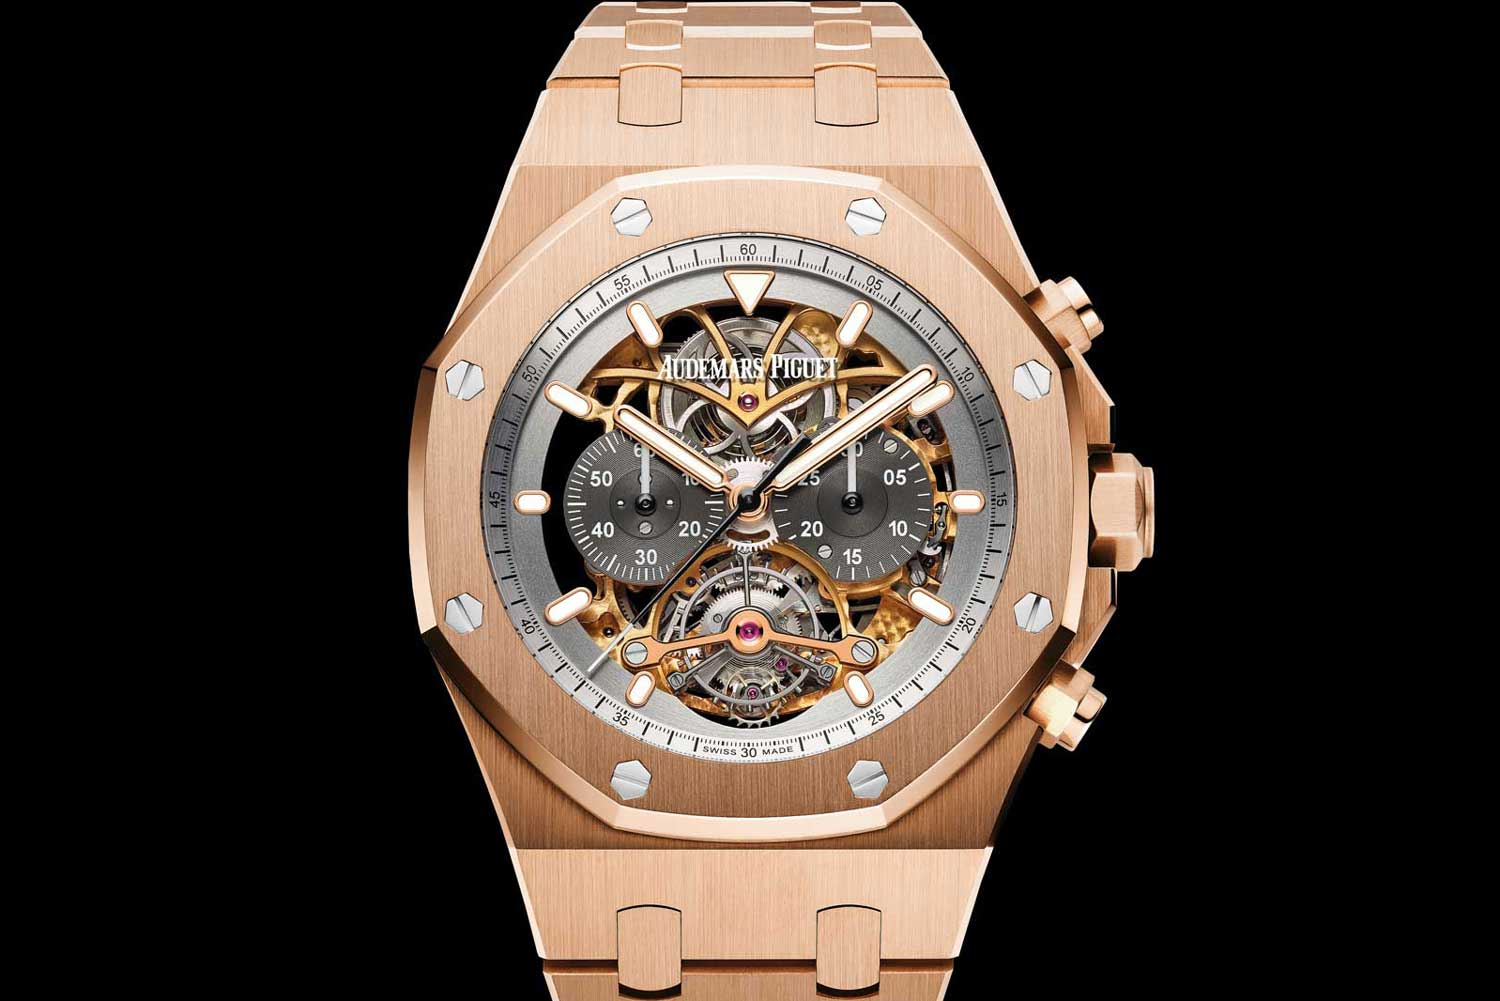 Audemars Piguet Royal Oak Tourbillon Chronograph Openworked in Rose Gold